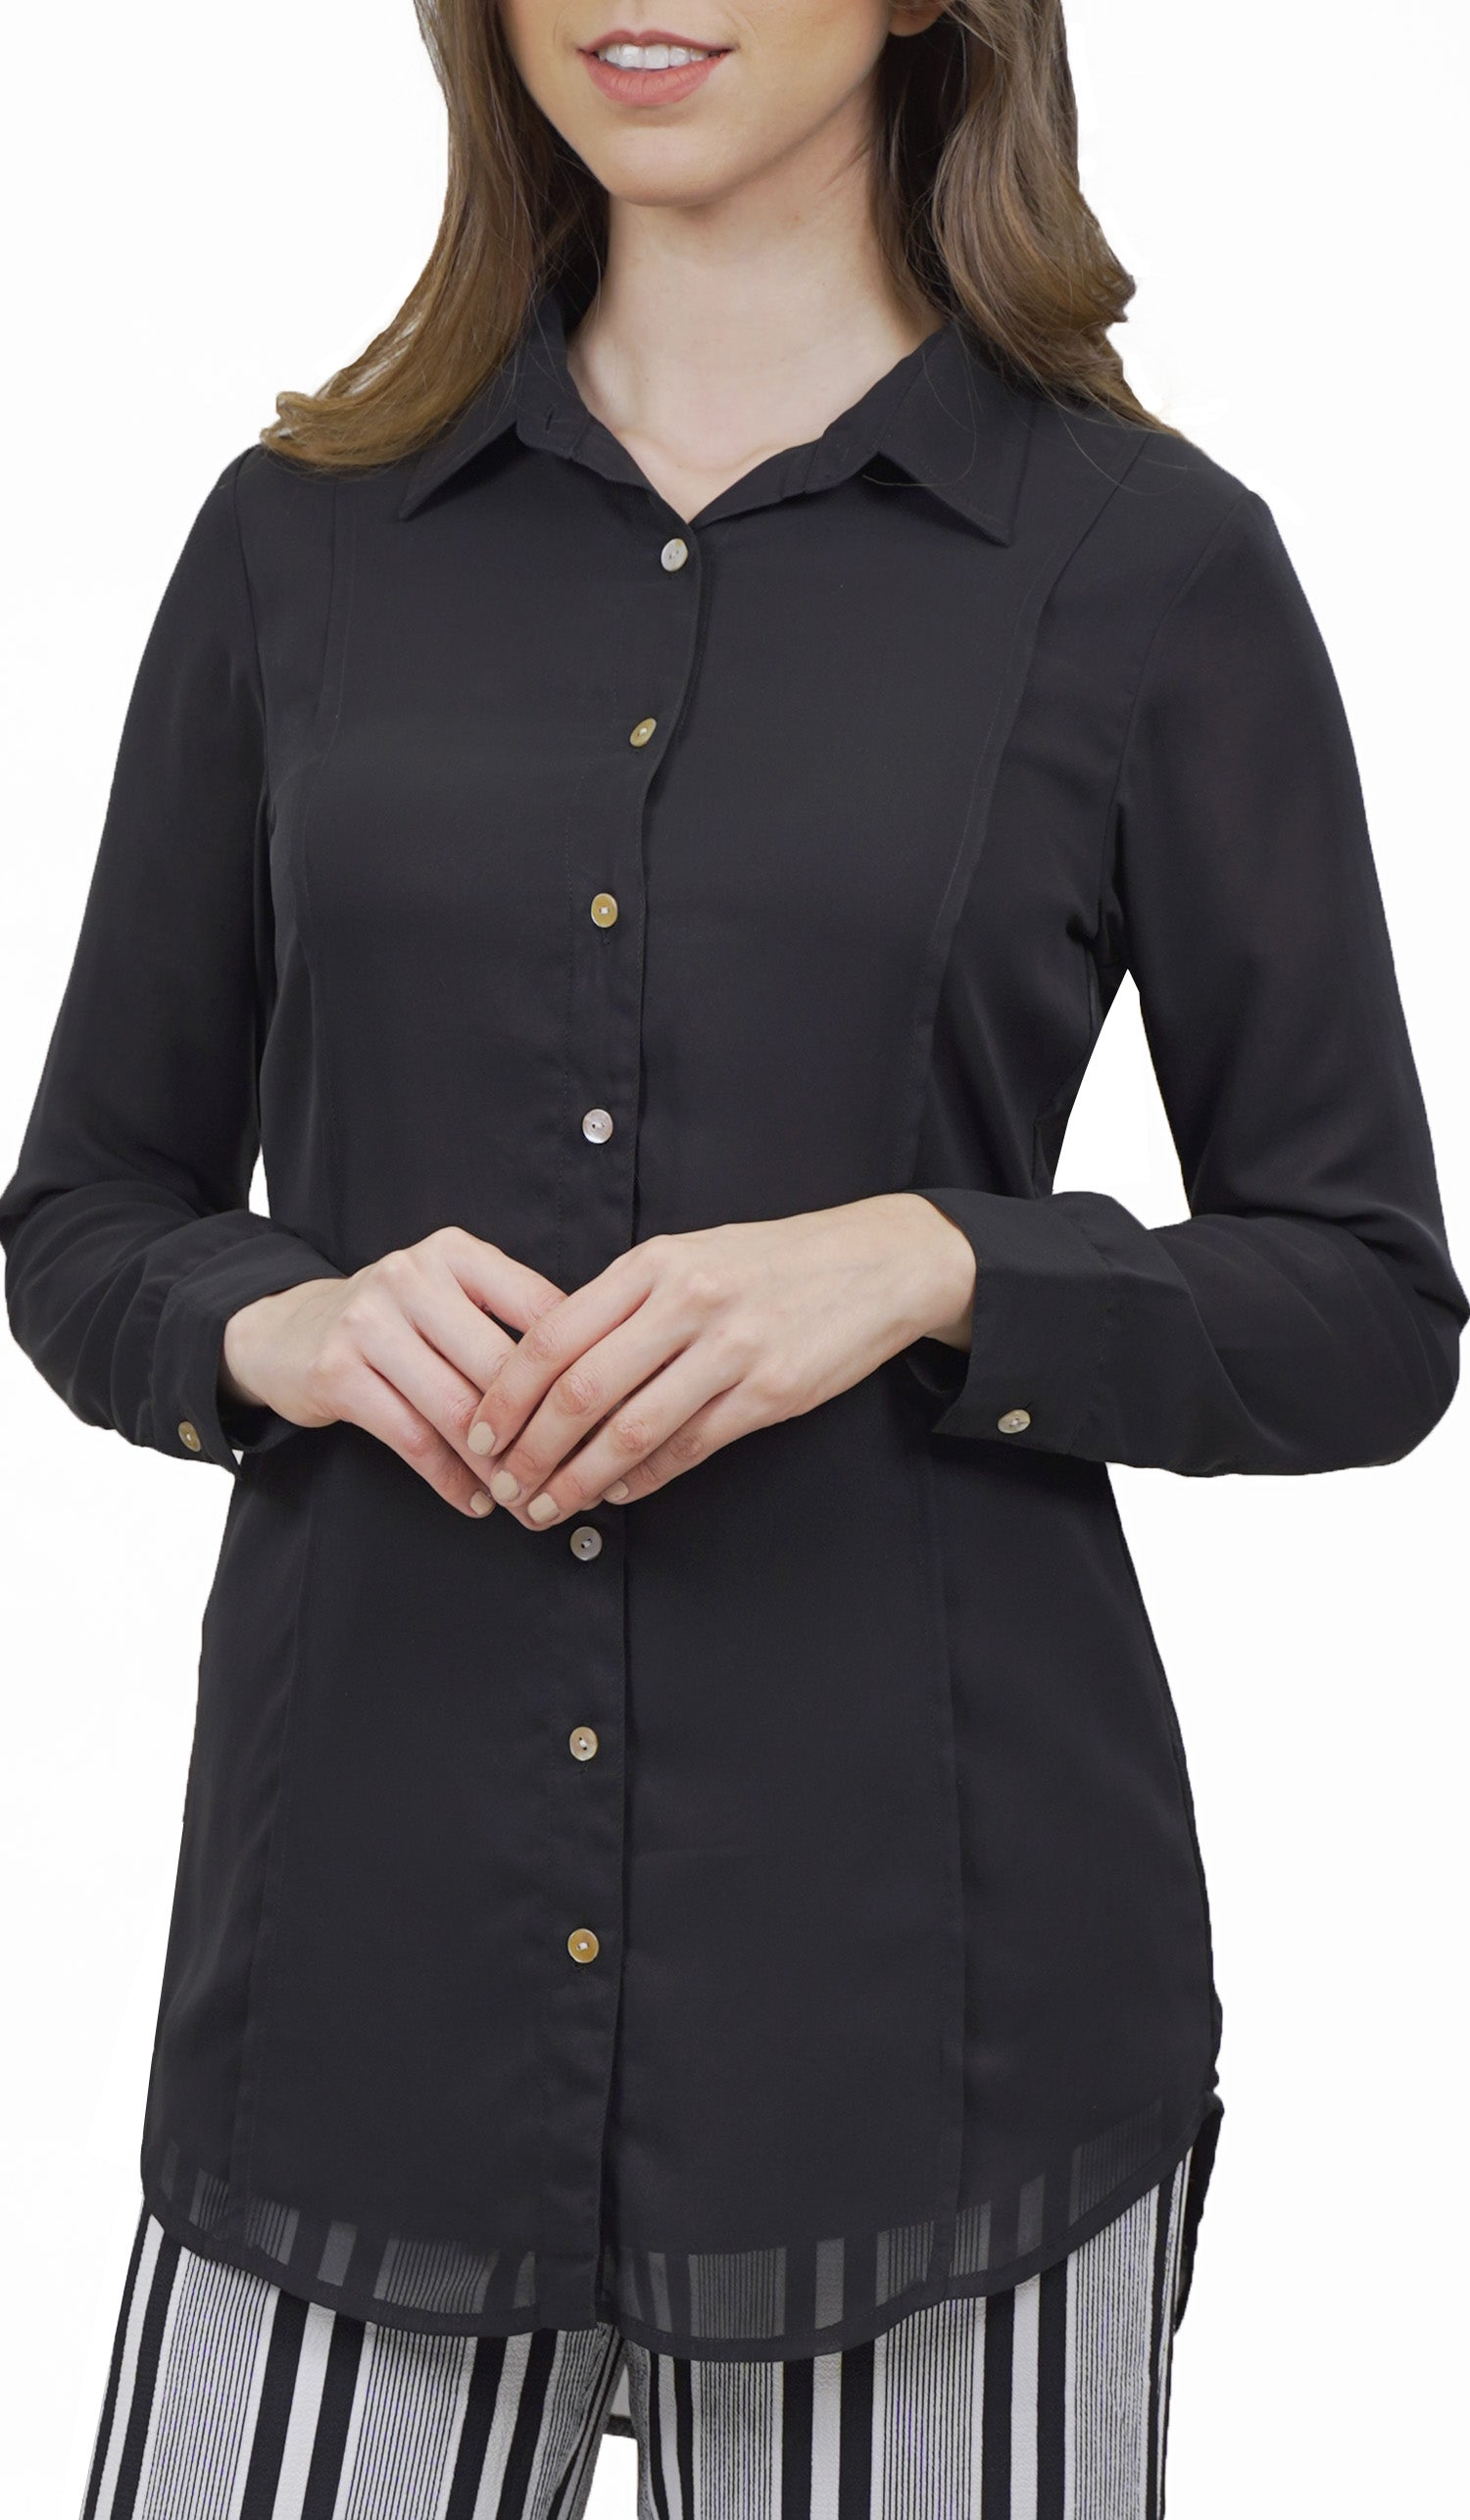 107964b81 Marwa Black Chiffon Long Buttondown Dress Shirt | Modest Fashion | Artizara  – ARTIZARA.COM